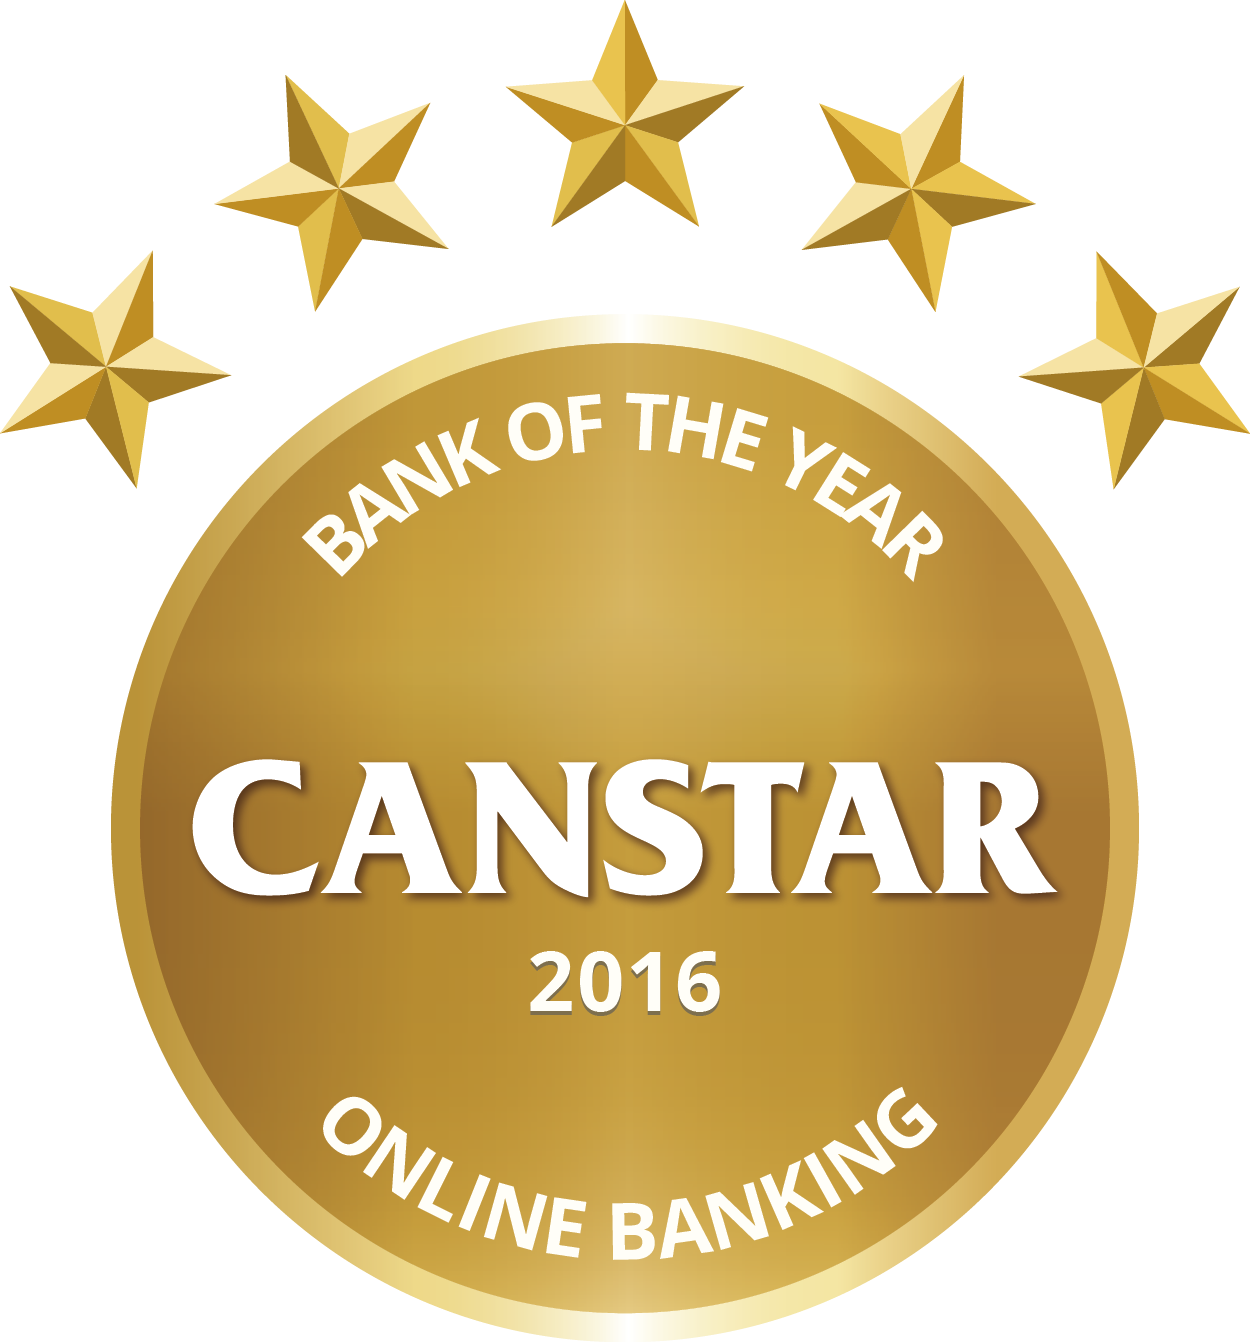 CANSTAR 2016 – Bank of the Year  – Online Banking